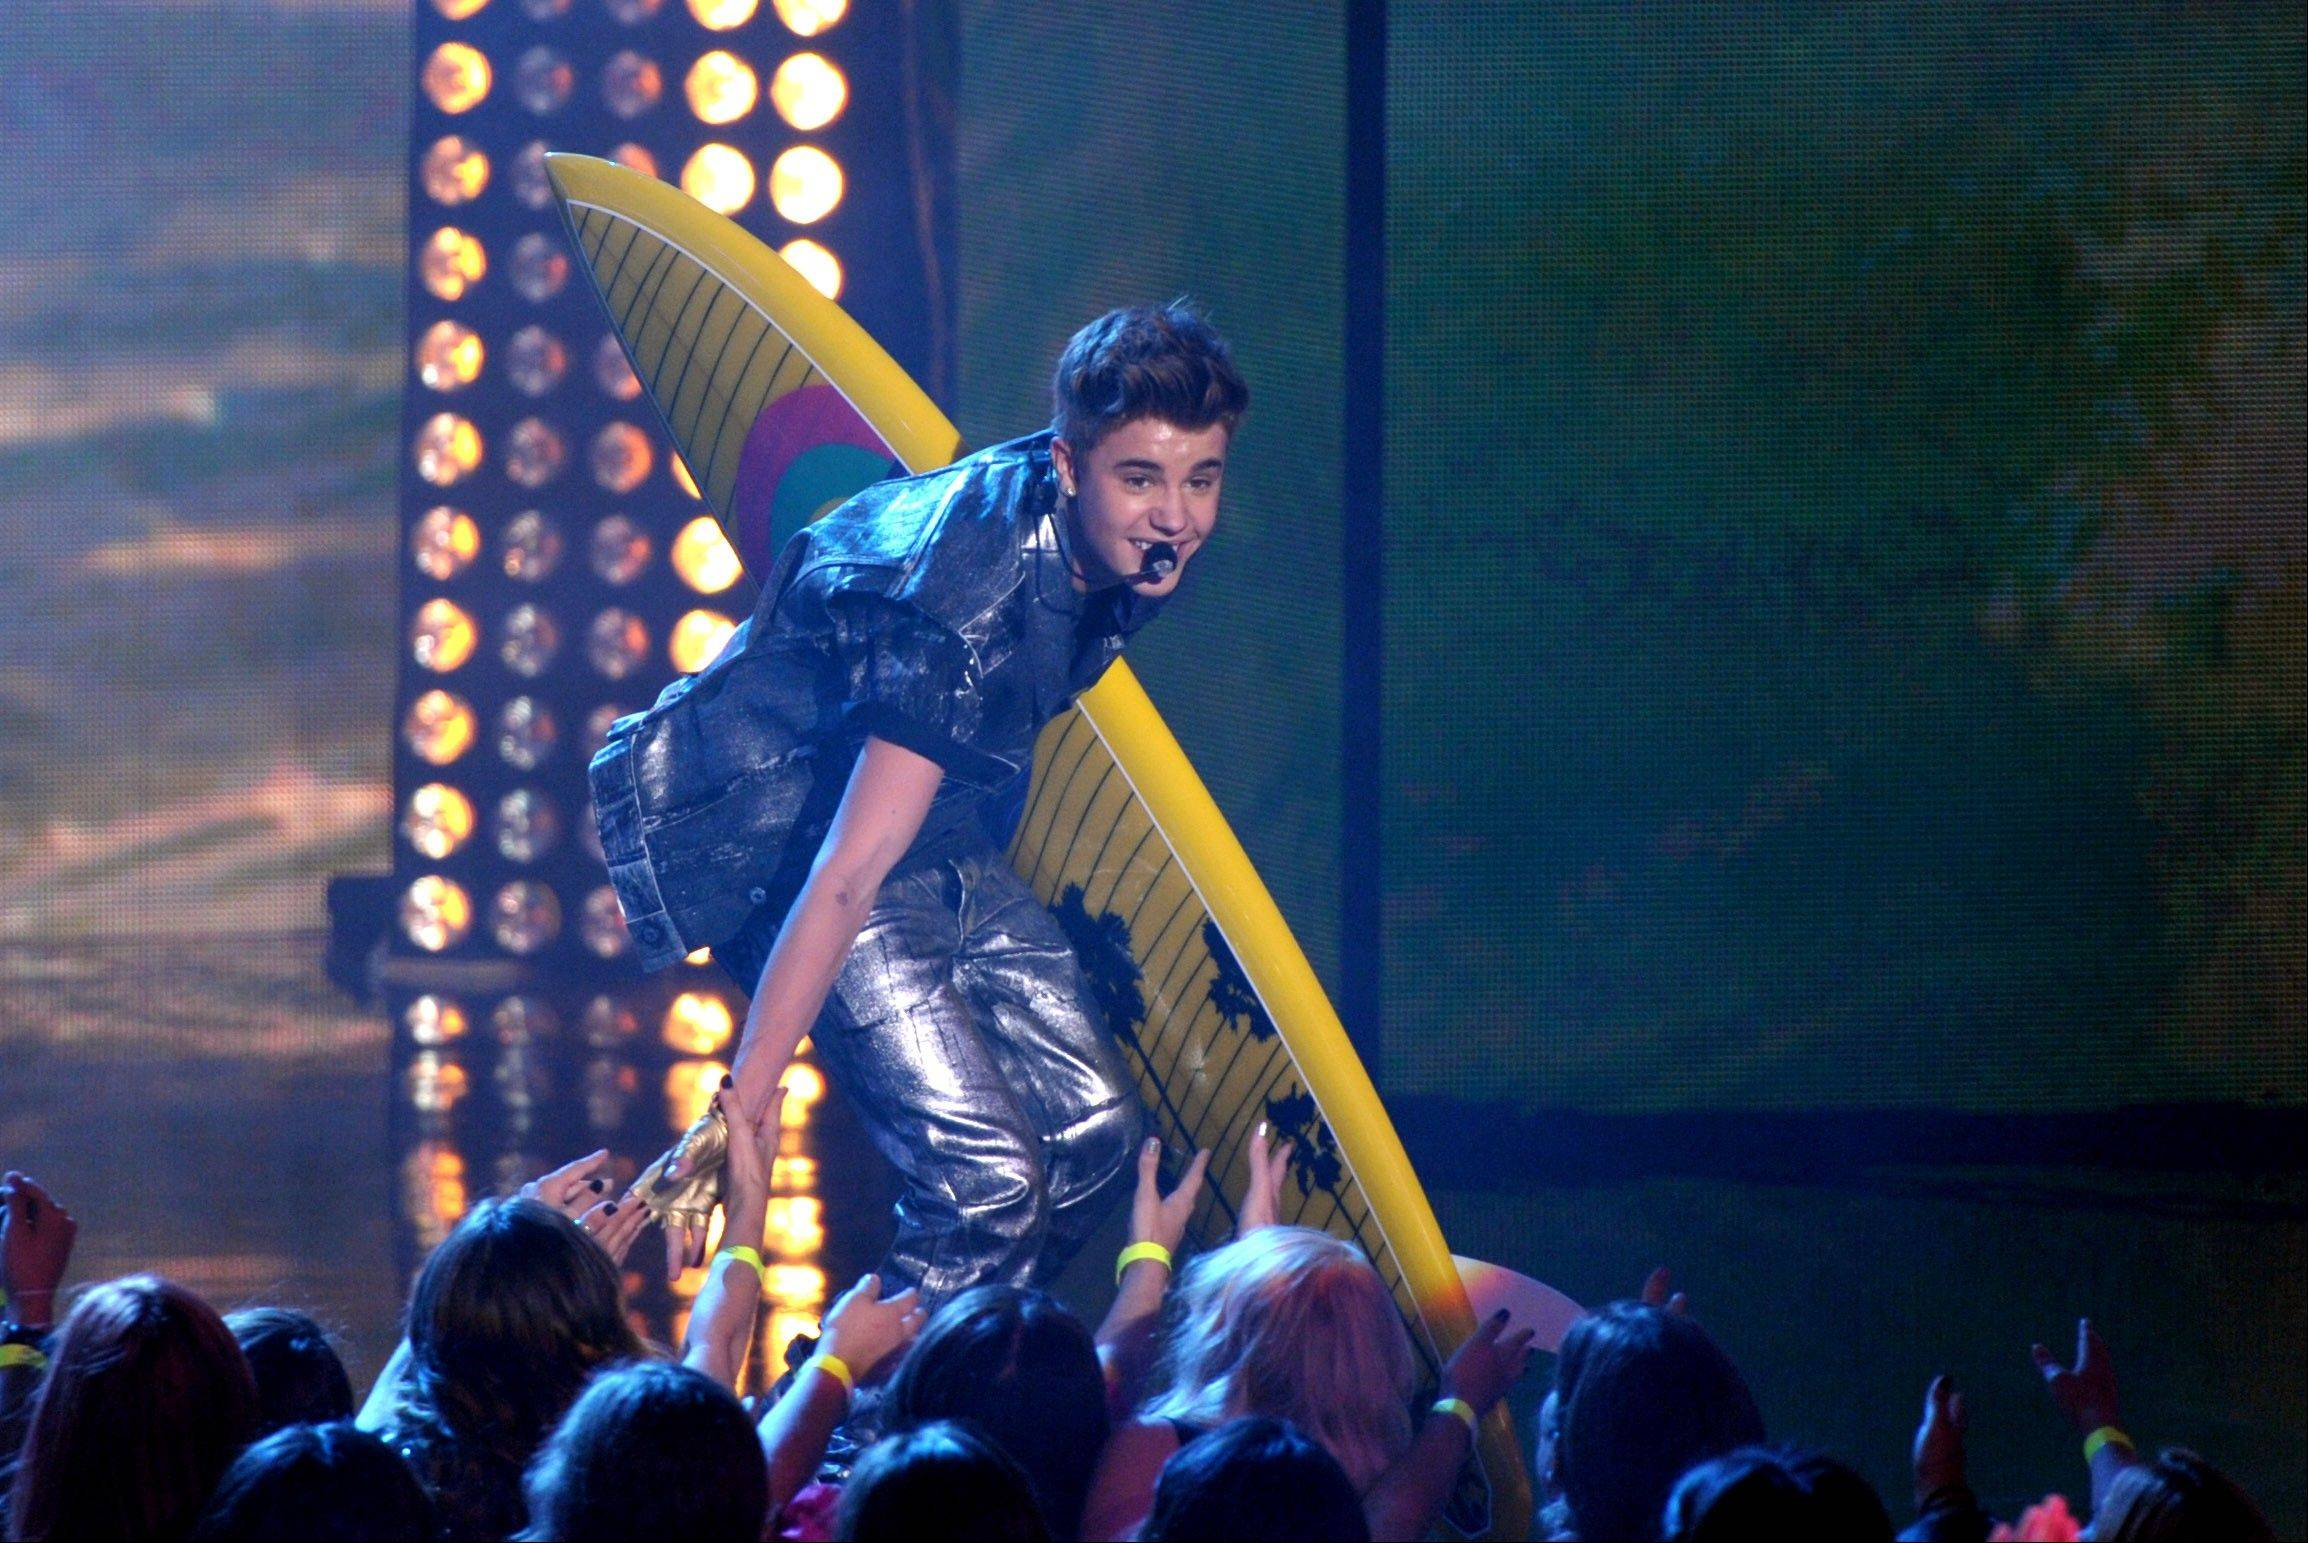 Justin Bieber performs onstage at the Teen Choice Awards on Sunday in Universal City, Calif.